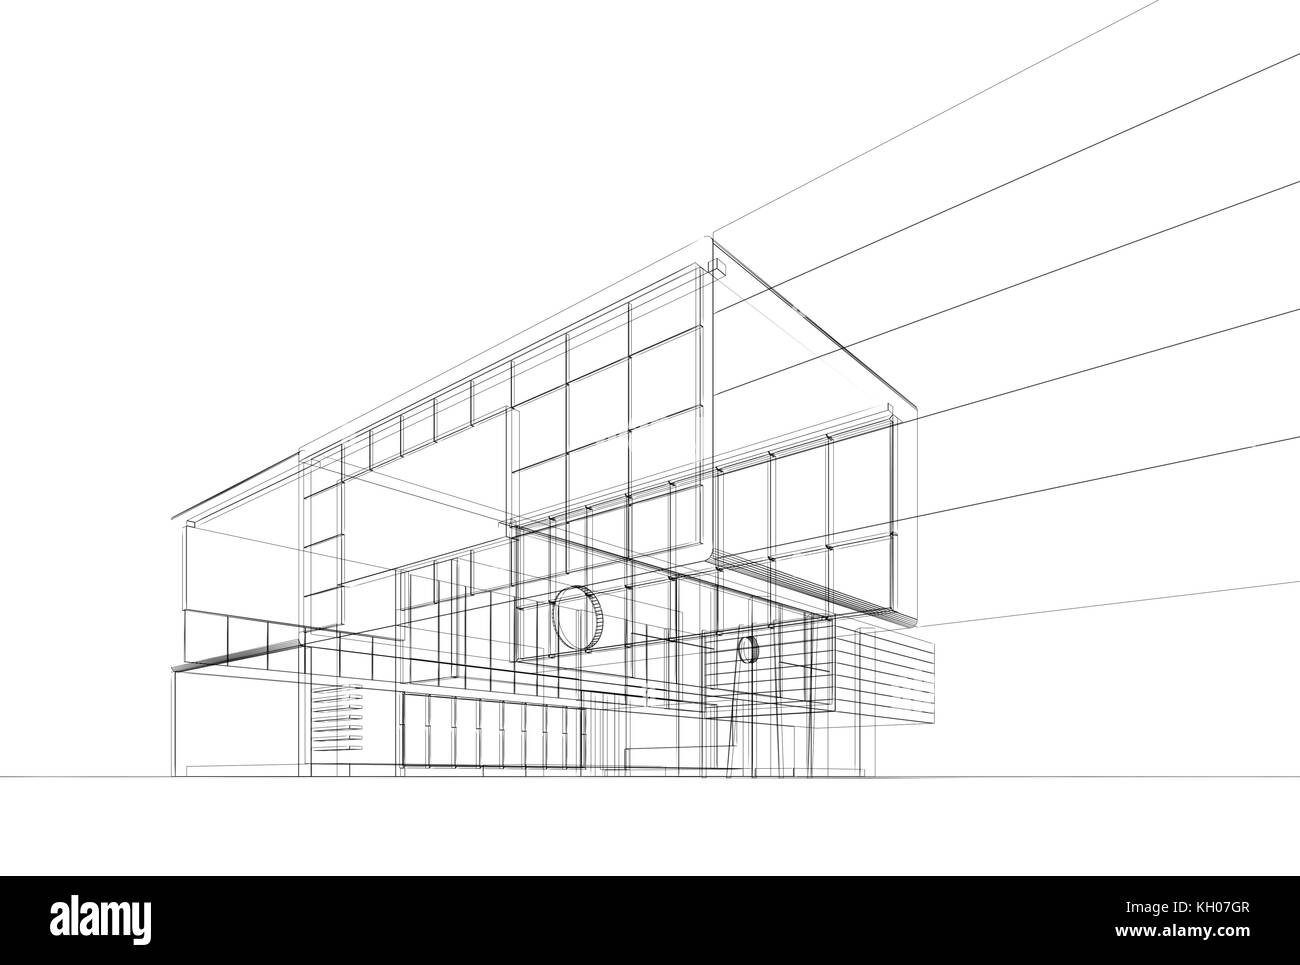 Architecture blueprint on white background building design and 3d architecture blueprint on white background building design and 3d rendering model my own malvernweather Choice Image